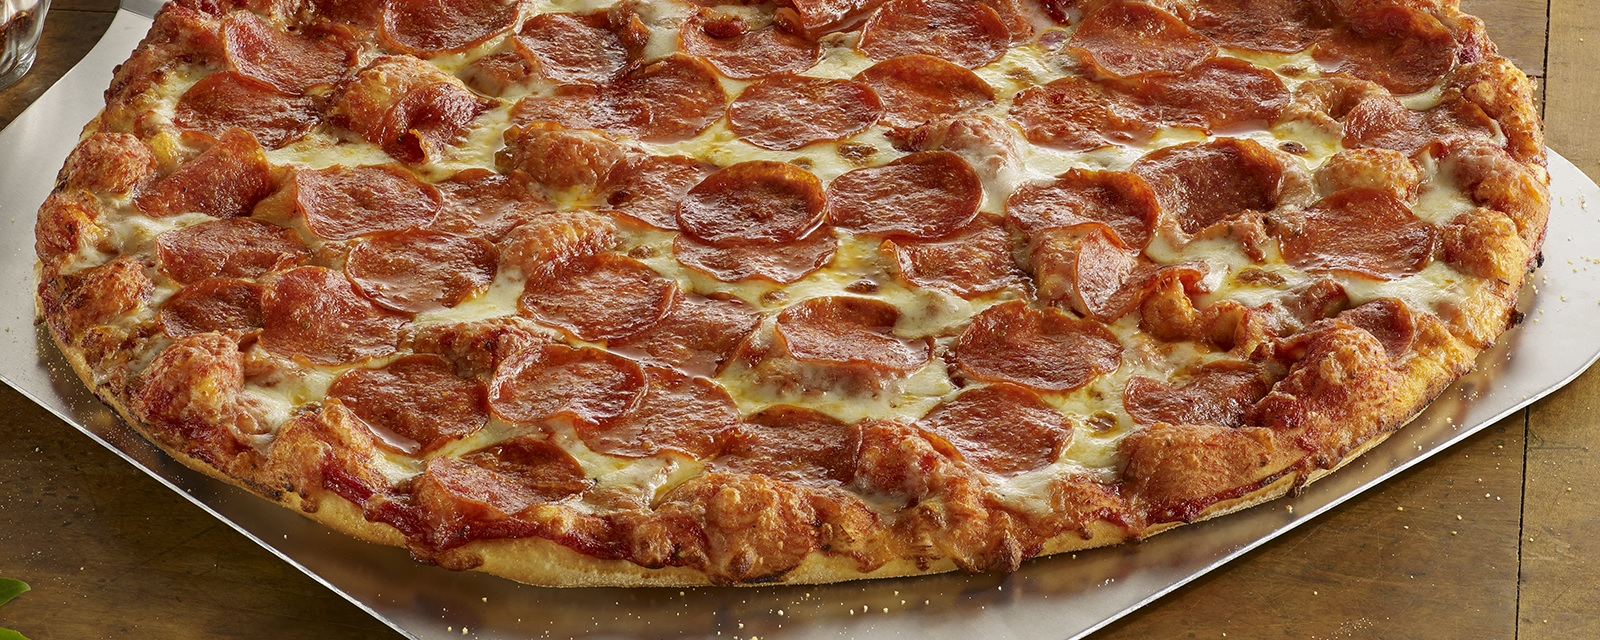 Shakey's Hero Image - Get a medium 1-topping pizza for $5.99 when you buy a large PCM combo